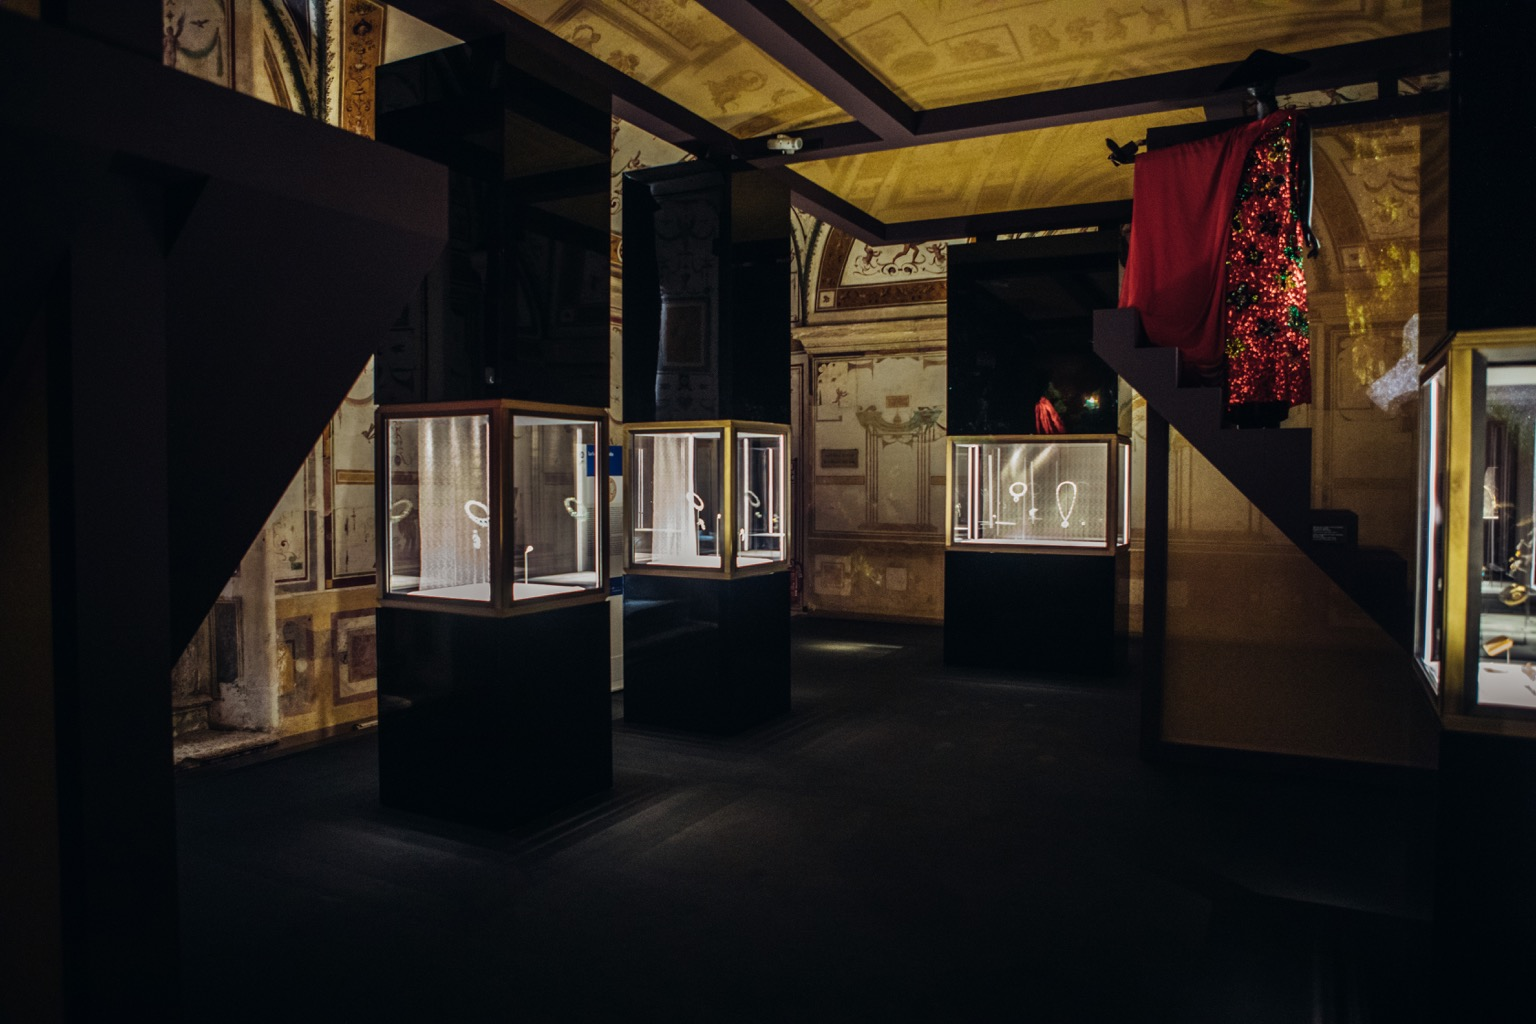 One of the galleries in the exhibit 'BVLGARI, The Story, The Dream' Photo courtesy